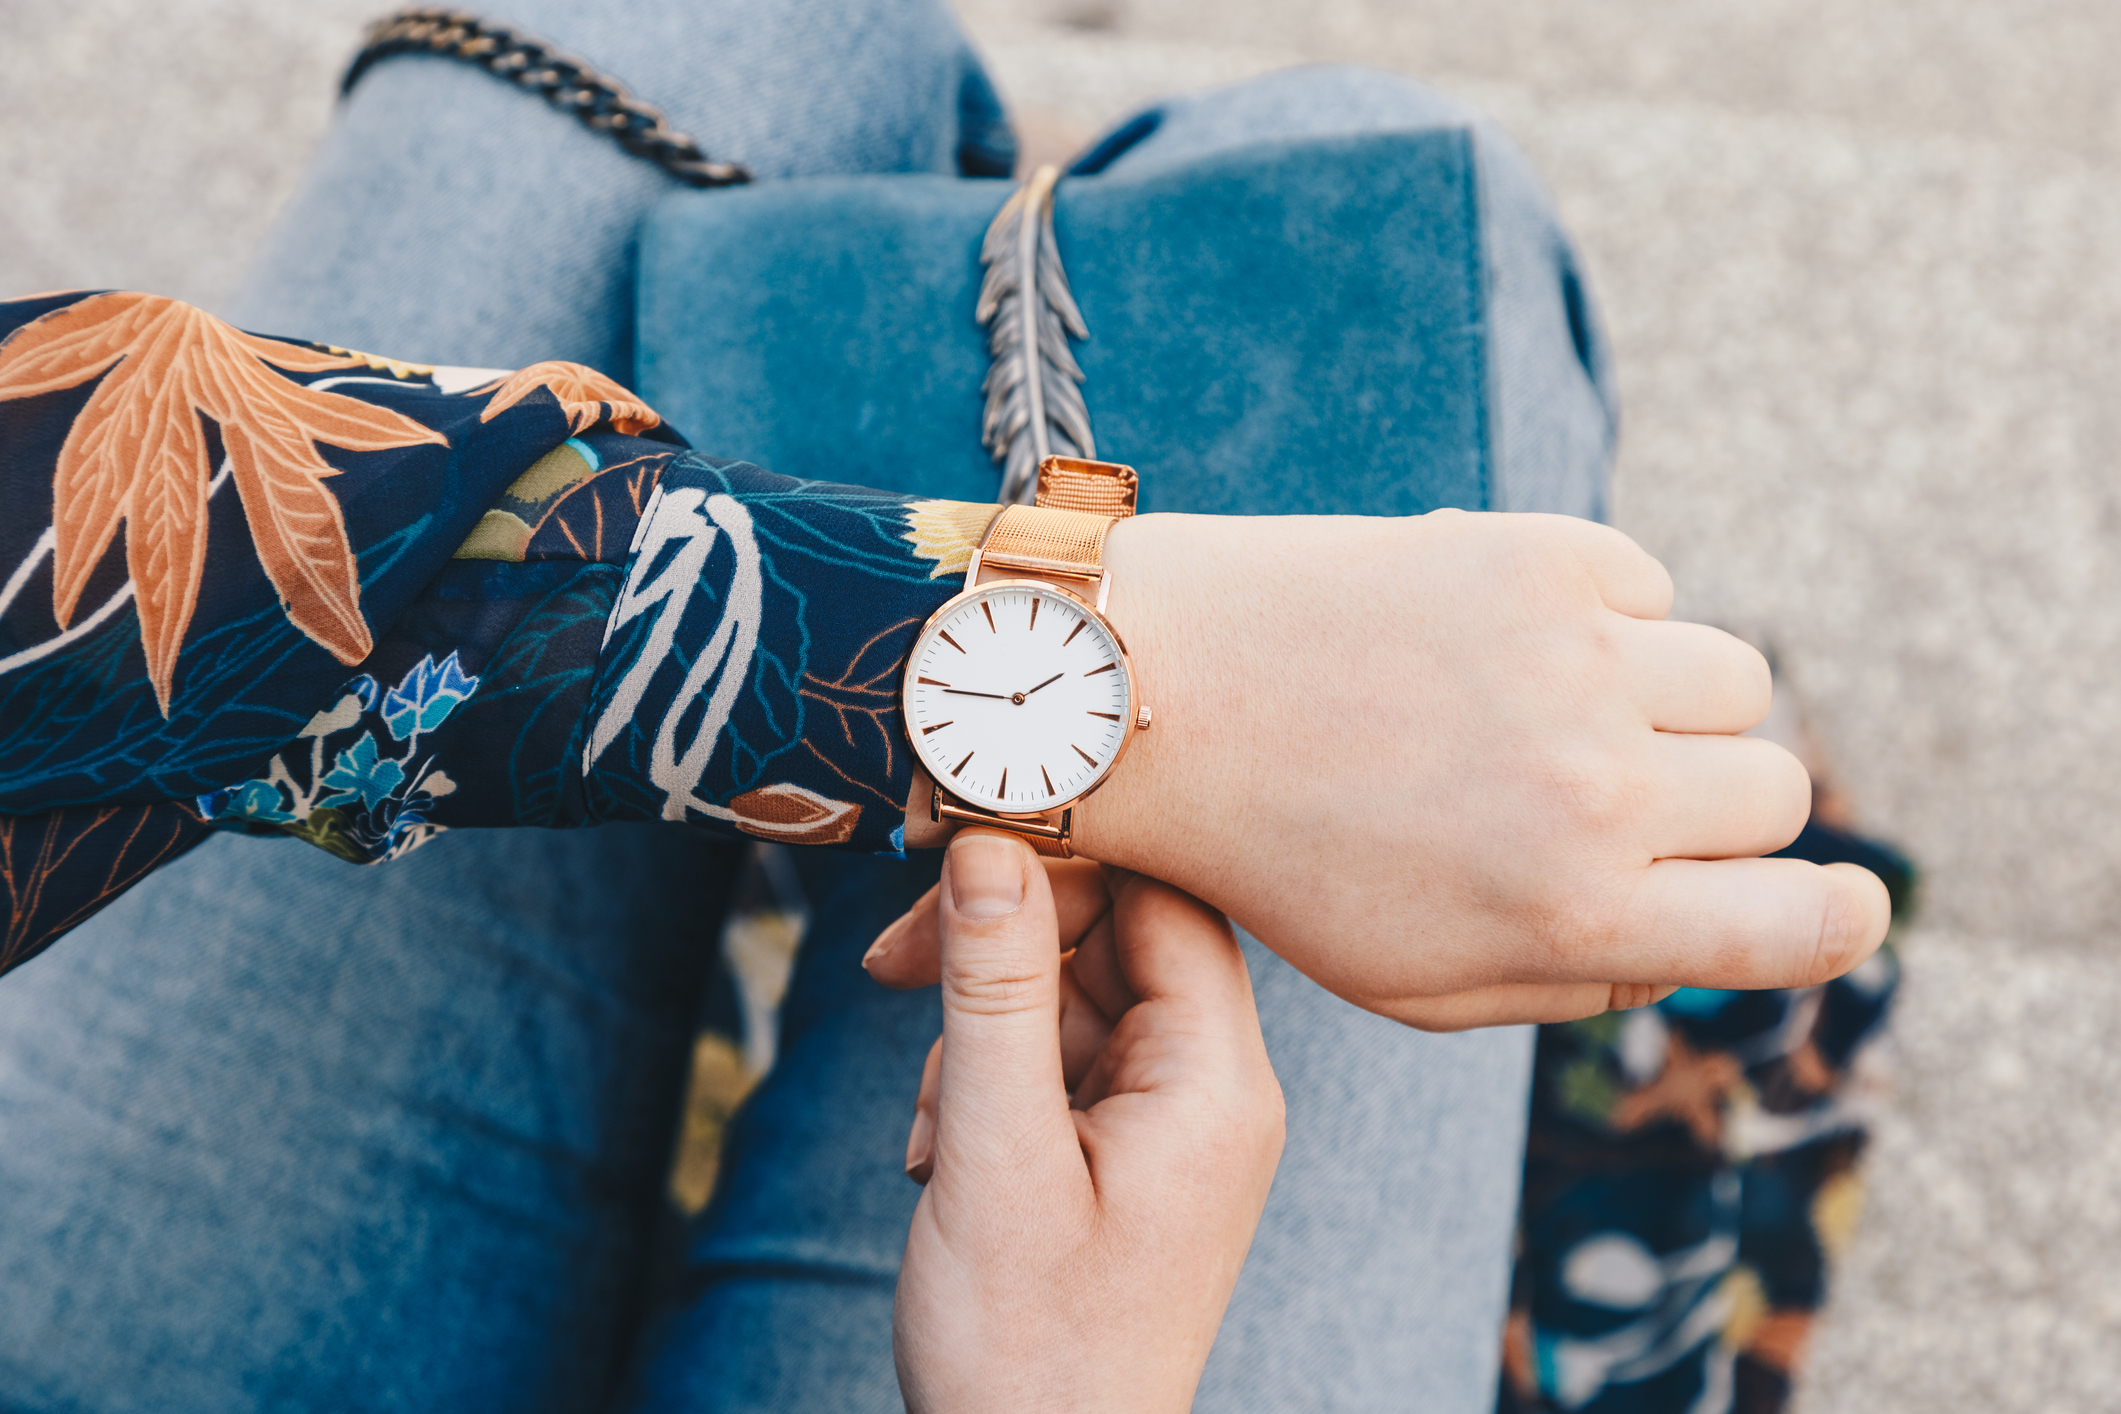 Best Equestrian Watches Each Horse Lover Should Take a Look At | HRN